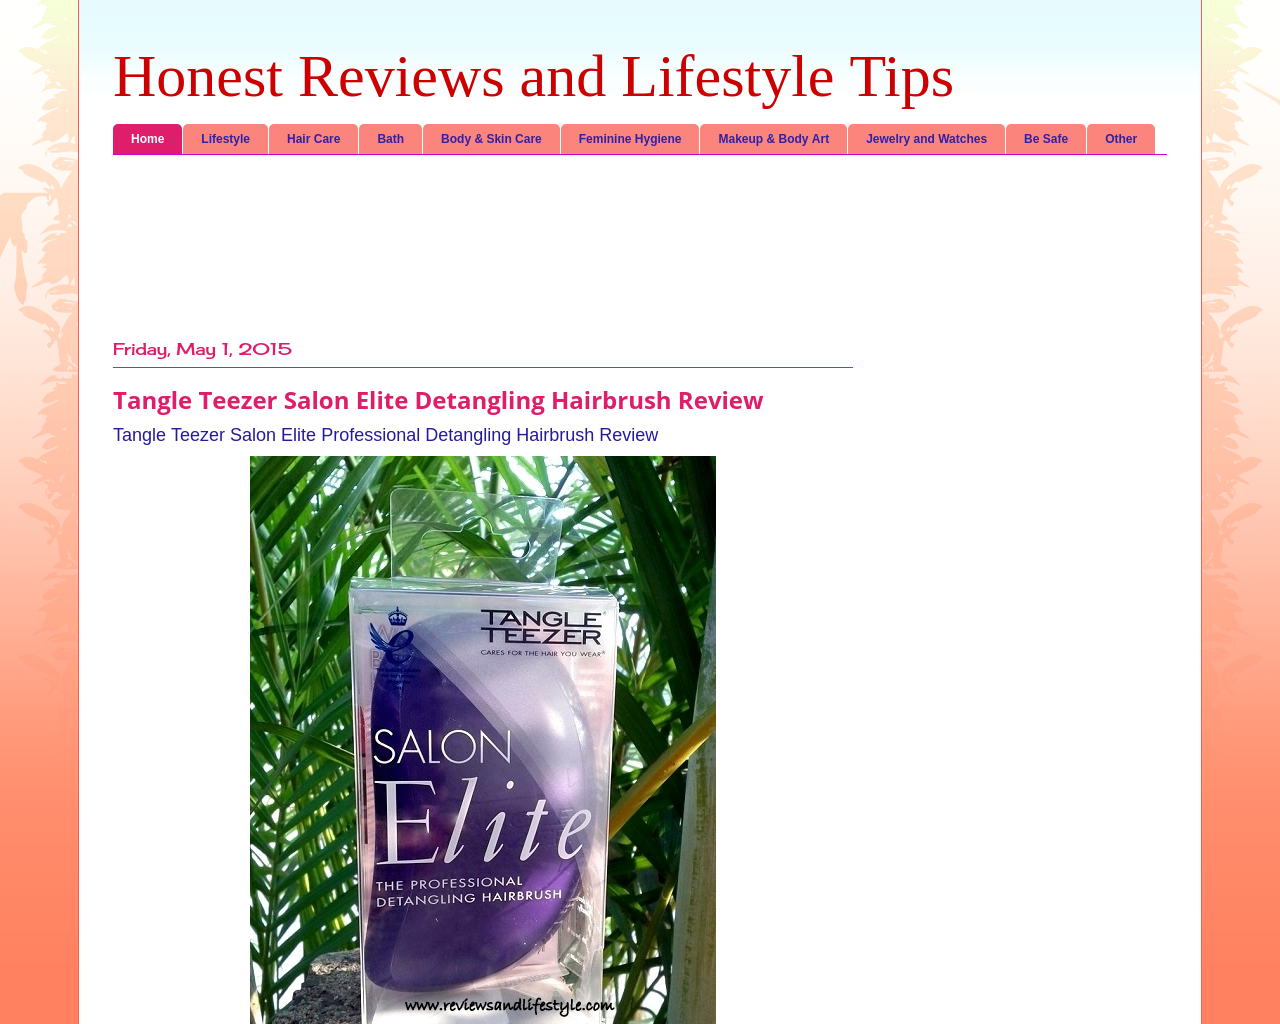 Honest Reviews and Lifestyle Tips